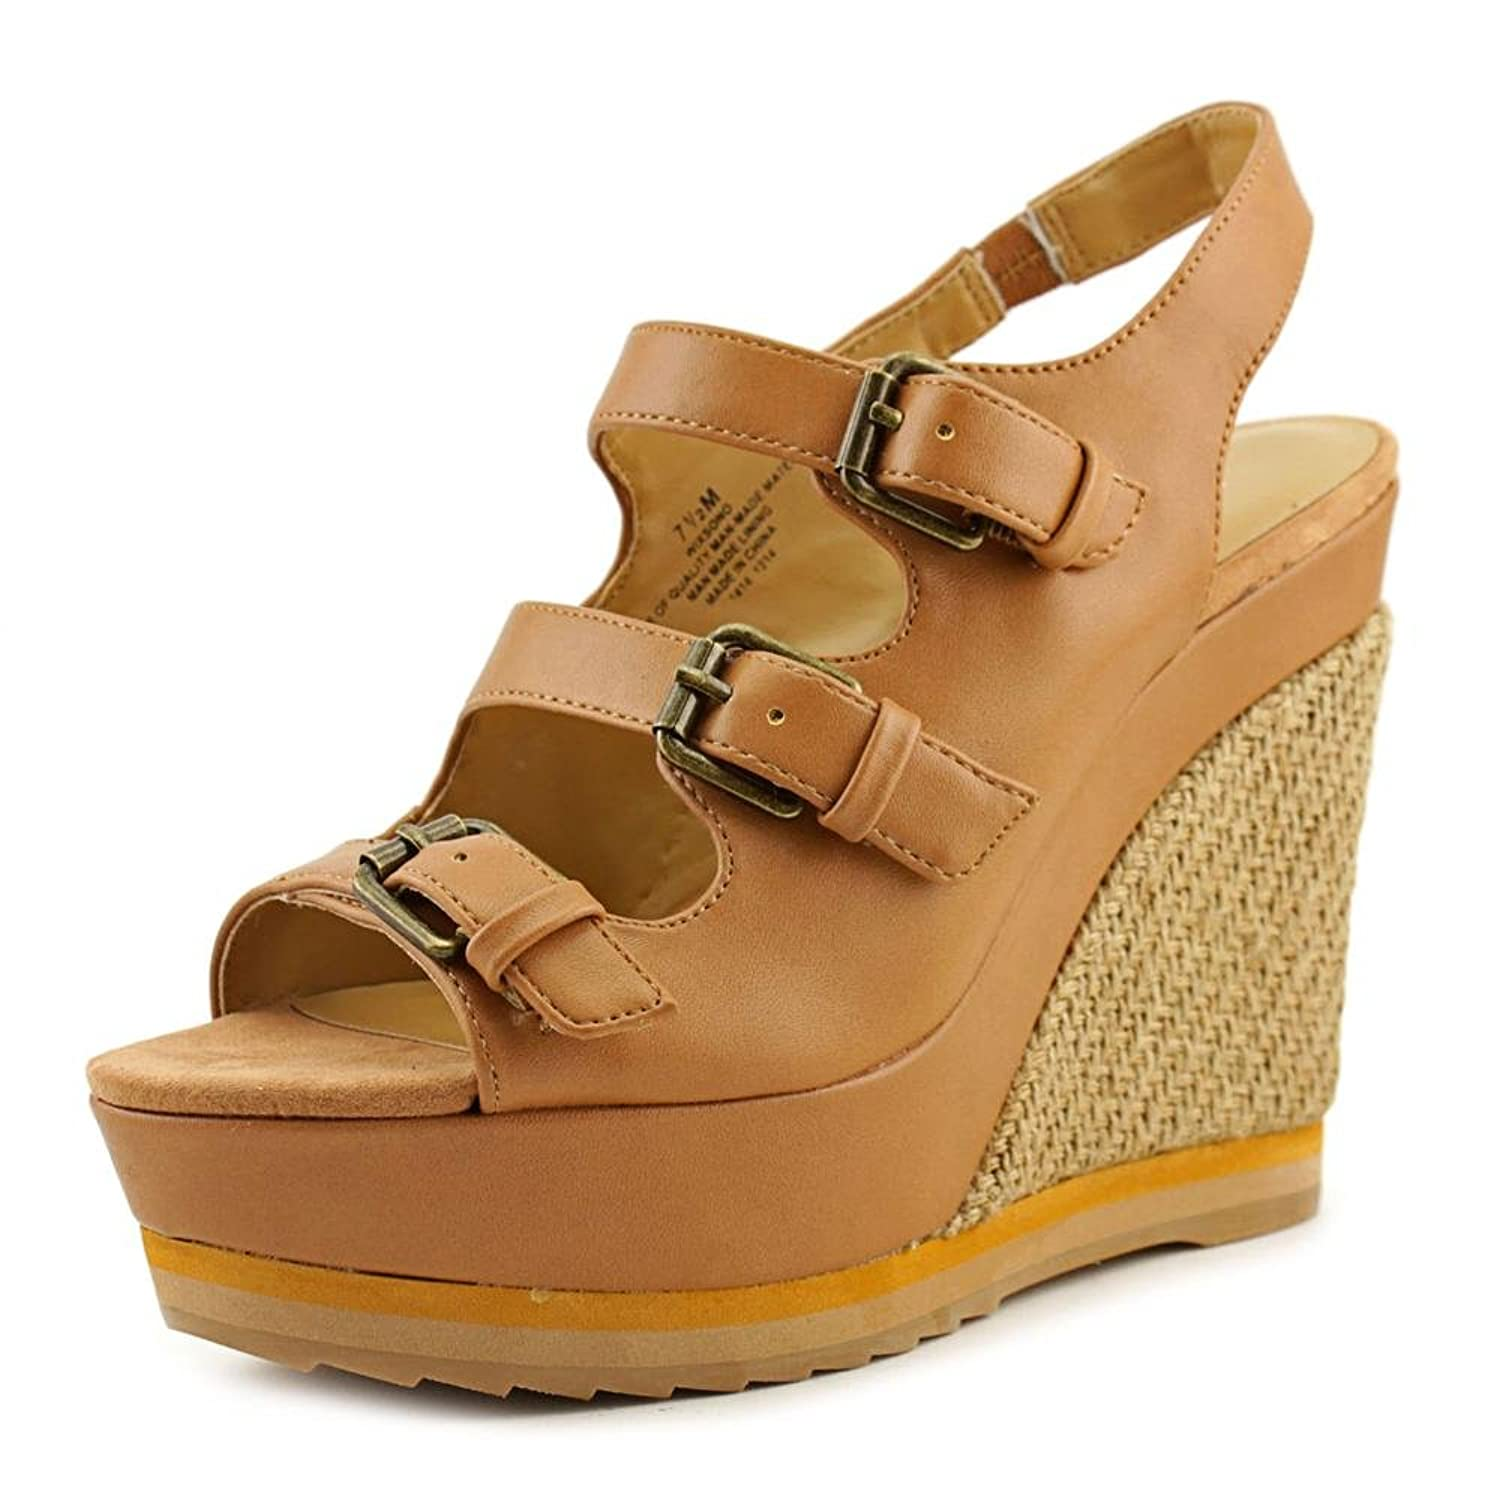 Nine West Wixsono Women Open Toe Synthetic Wedge Sandal